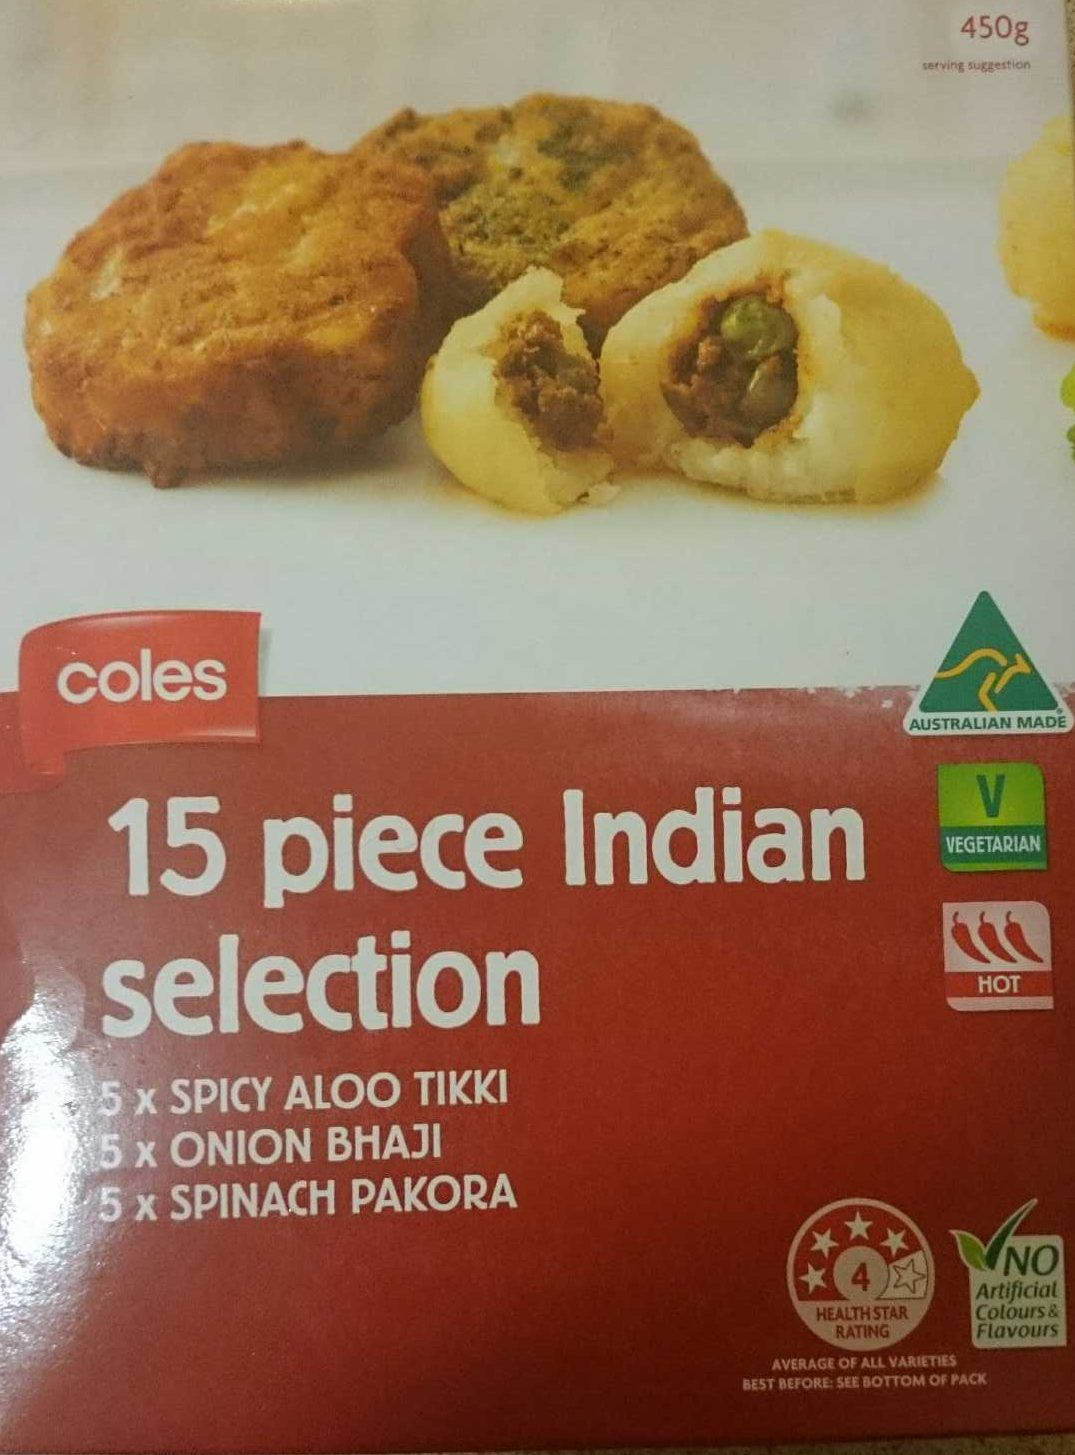 Coels 15 piece indian selection - Product